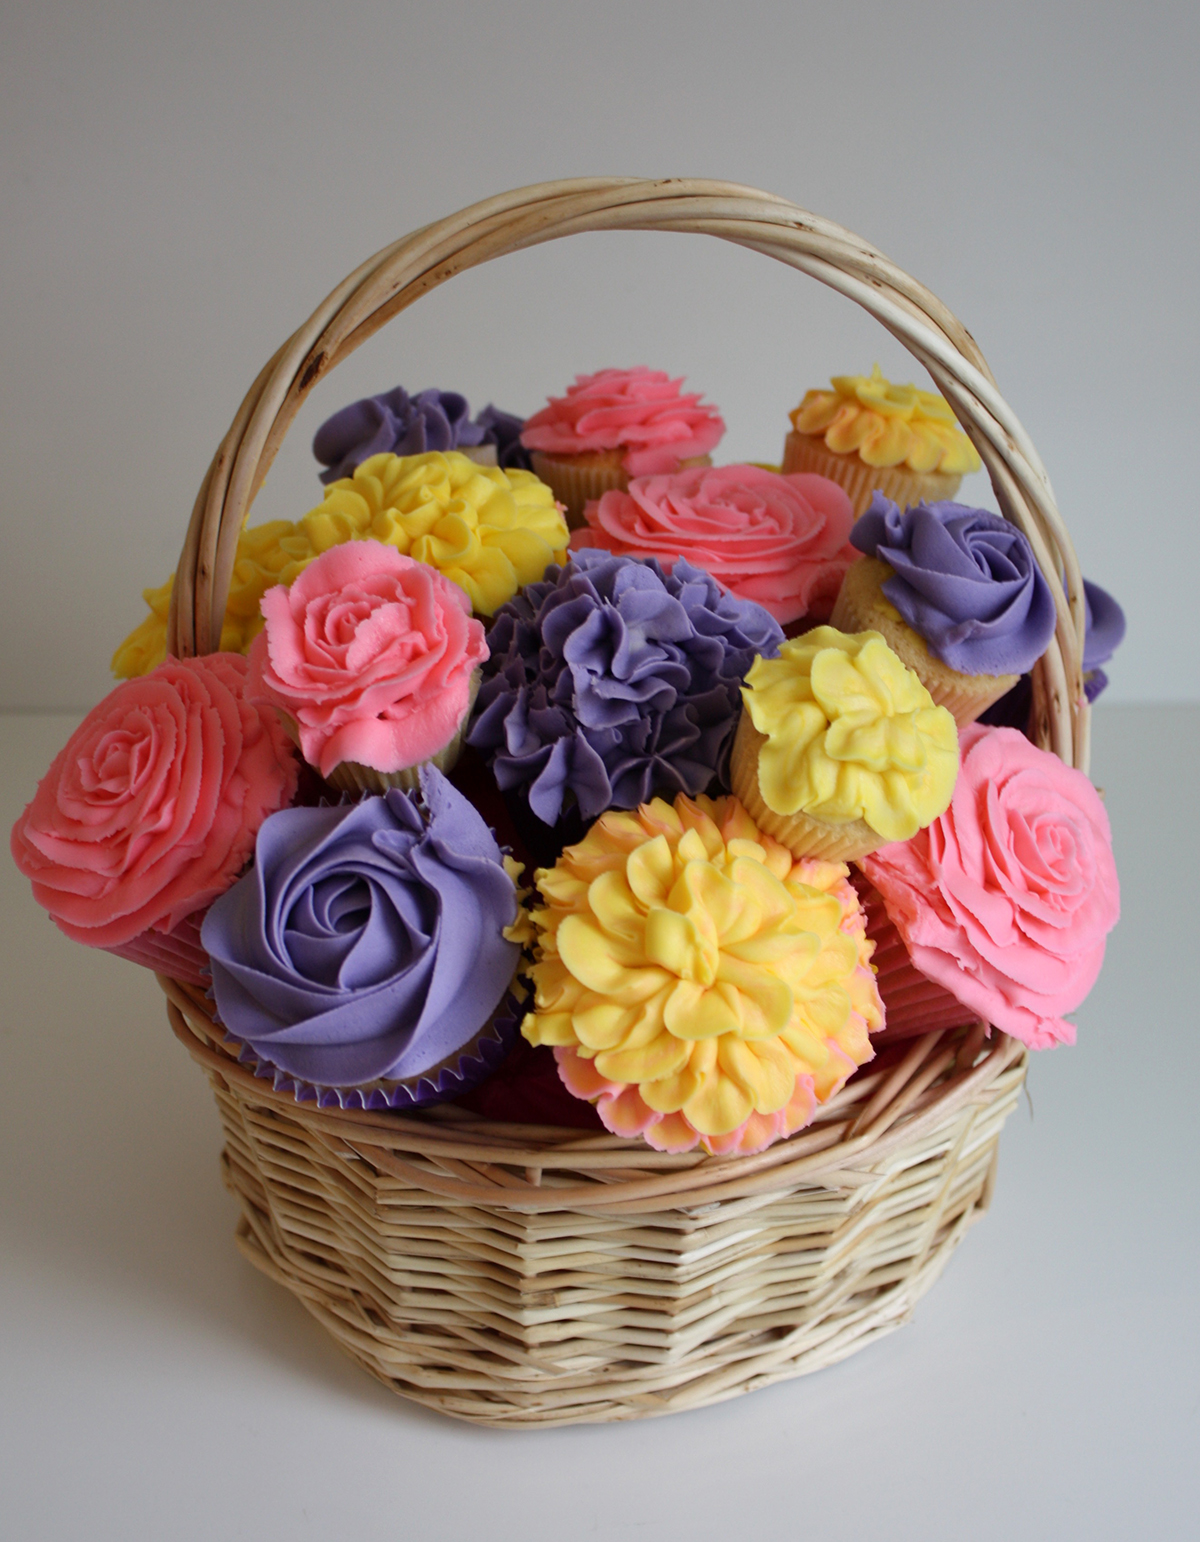 Cupcake bouquets and floral cupcakes heaven is a cupcake st img4838 izmirmasajfo